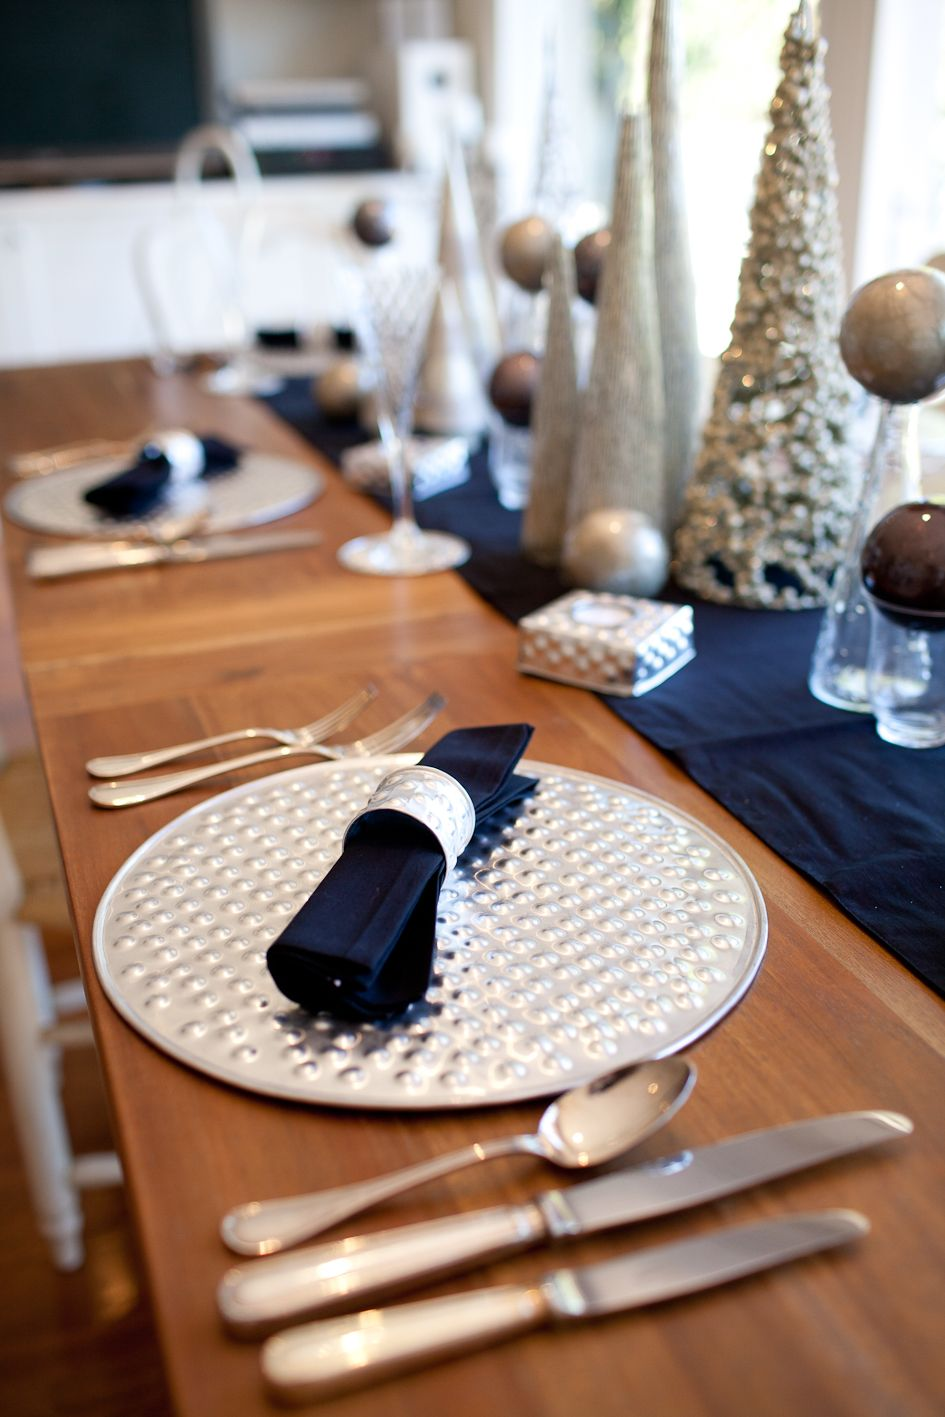 christmas table decor aluminium dot design placemat napkin ring accent coaster and votives accessories include black natural dyed cotton napkins chairs tiffany type lamps mirrored